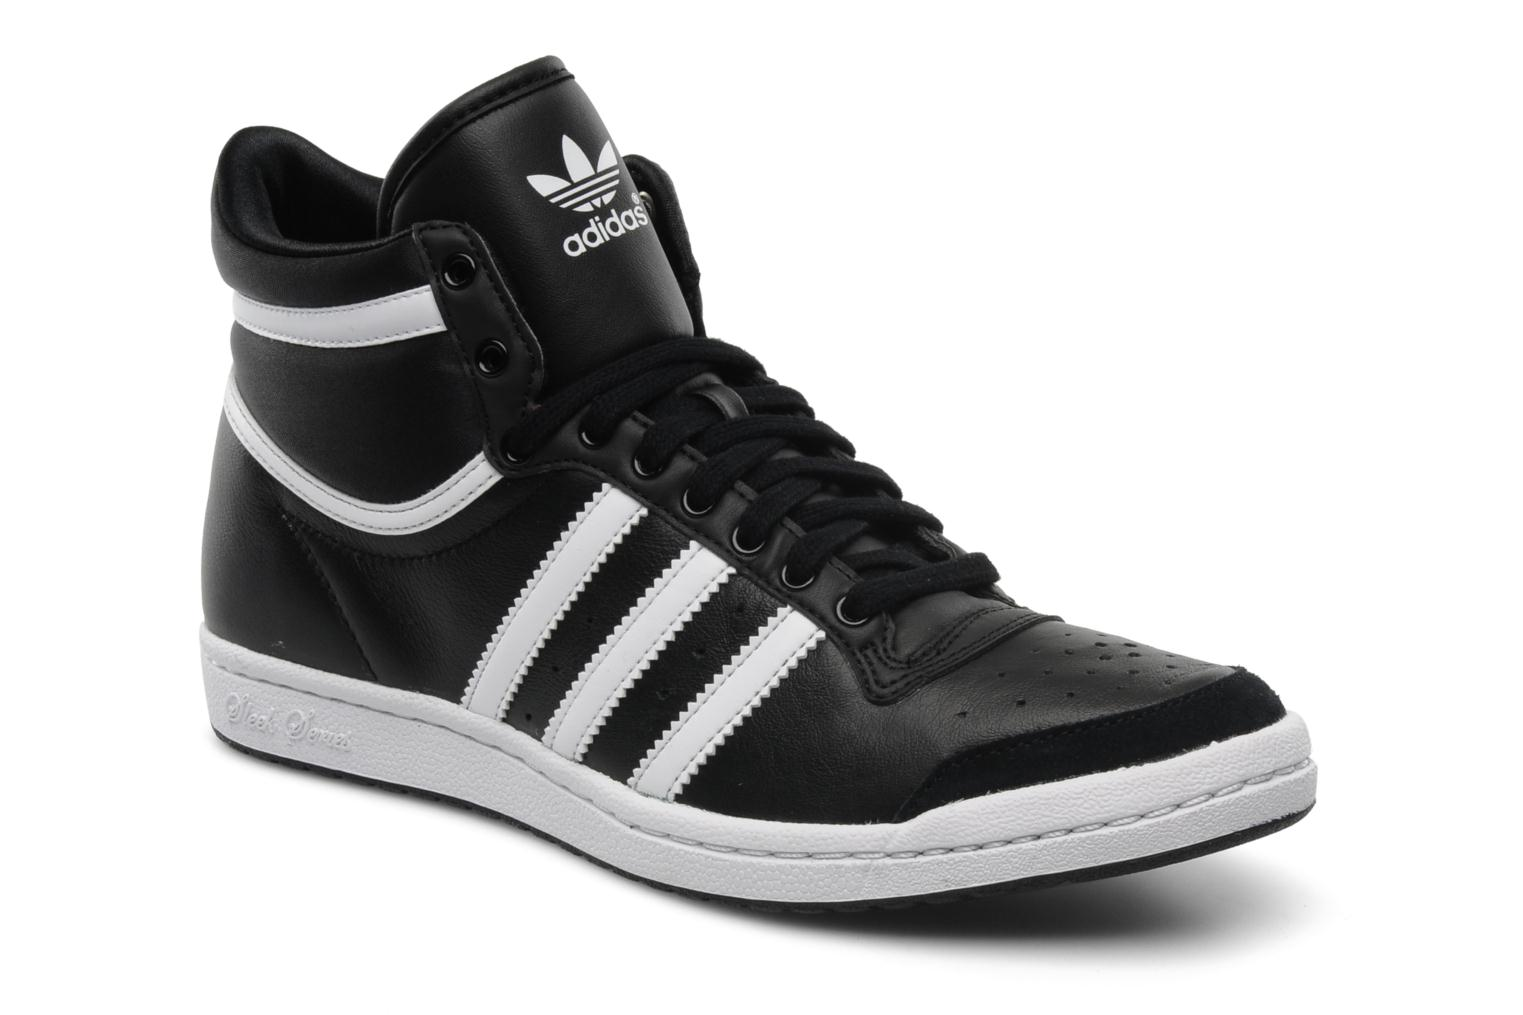 adidas baskets top ten hi sleek,Adidas Originals Baskets